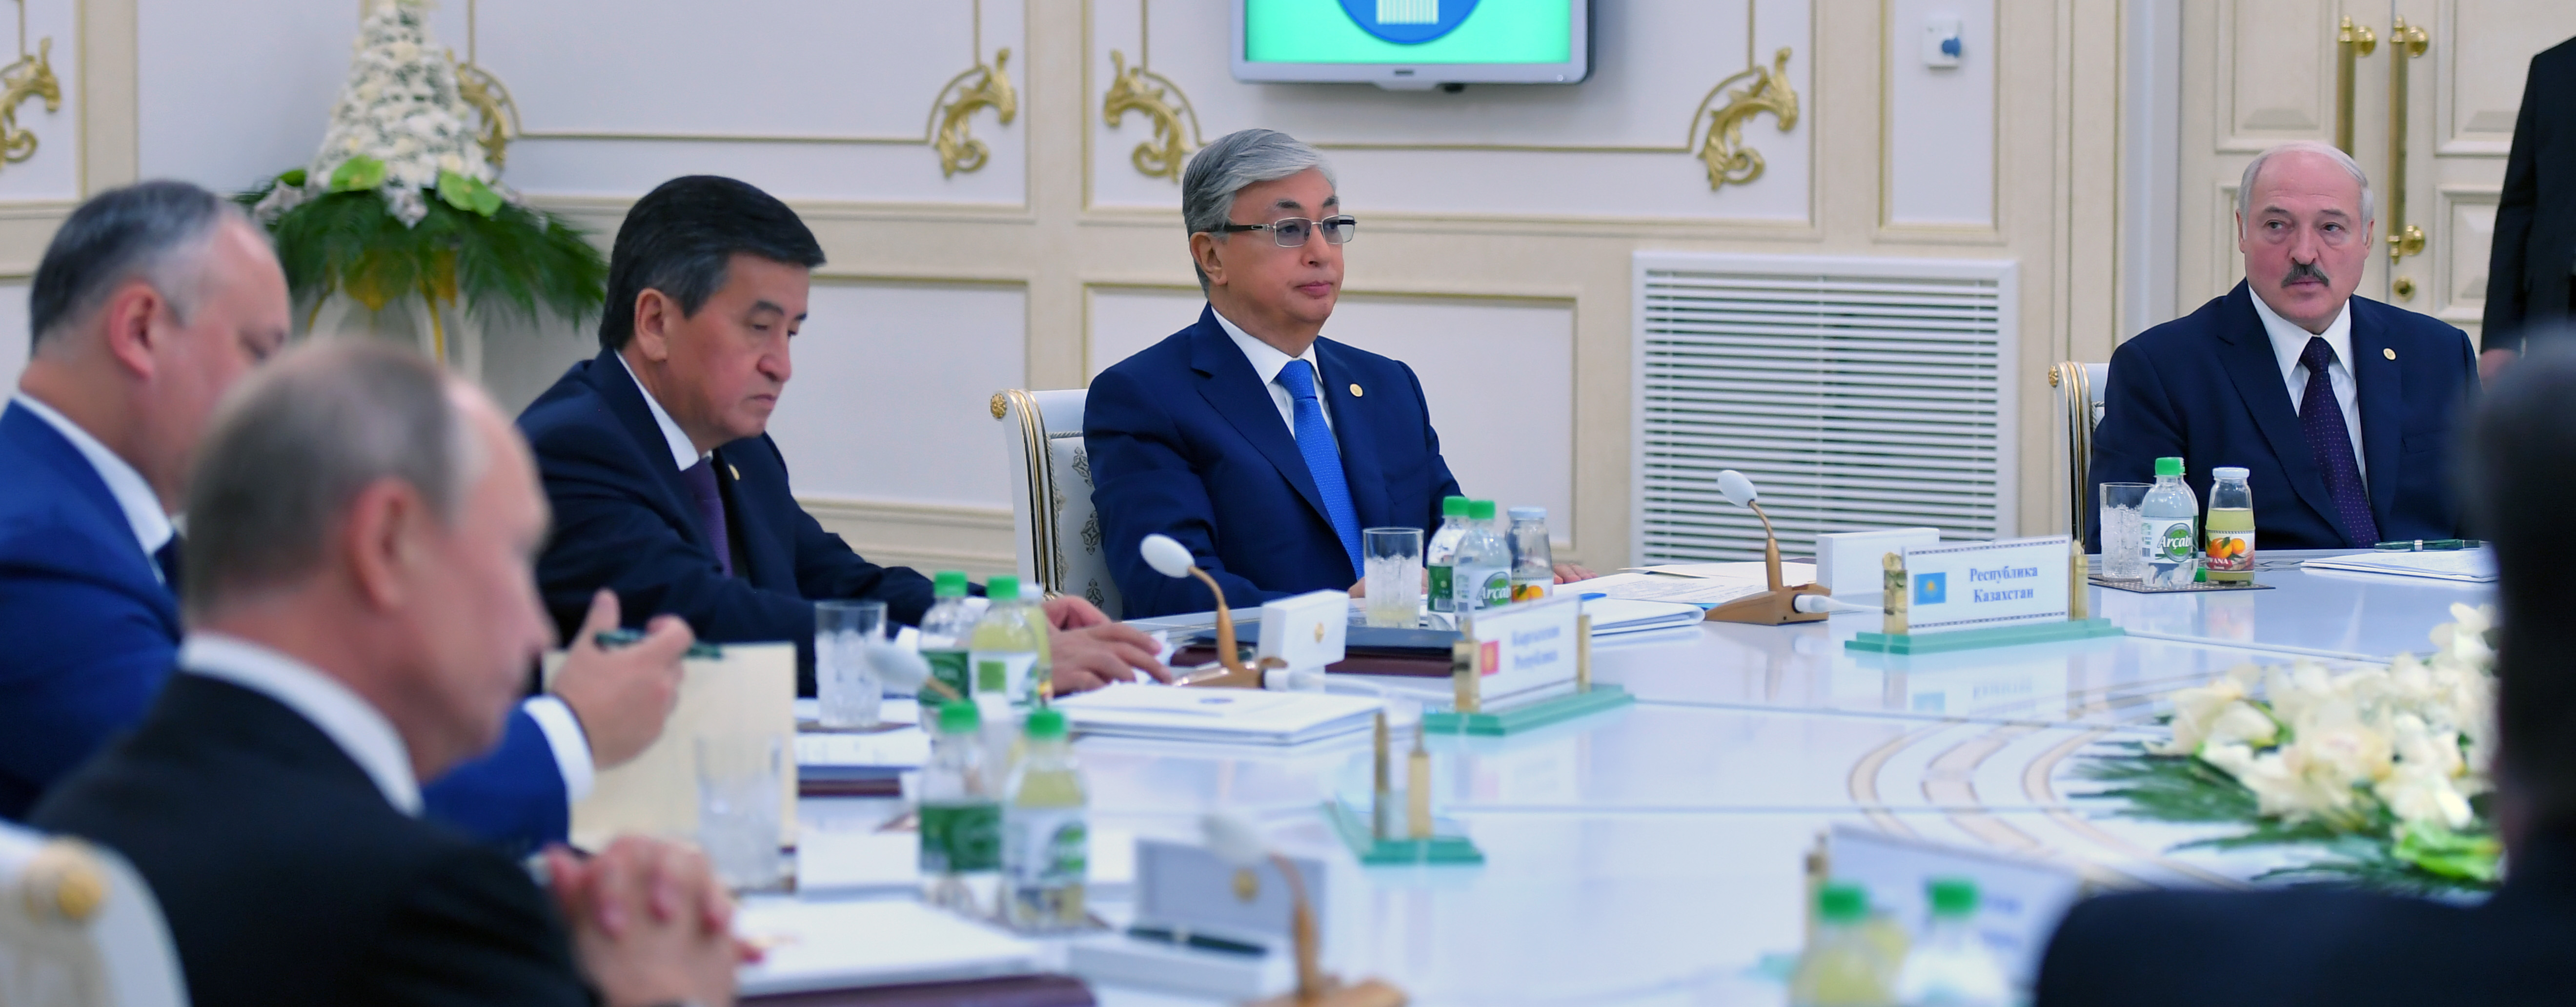 637ff1ea42274195f934489360fe95e5 - Tokayev called on more often to hold a forum of CIS on modern technologies